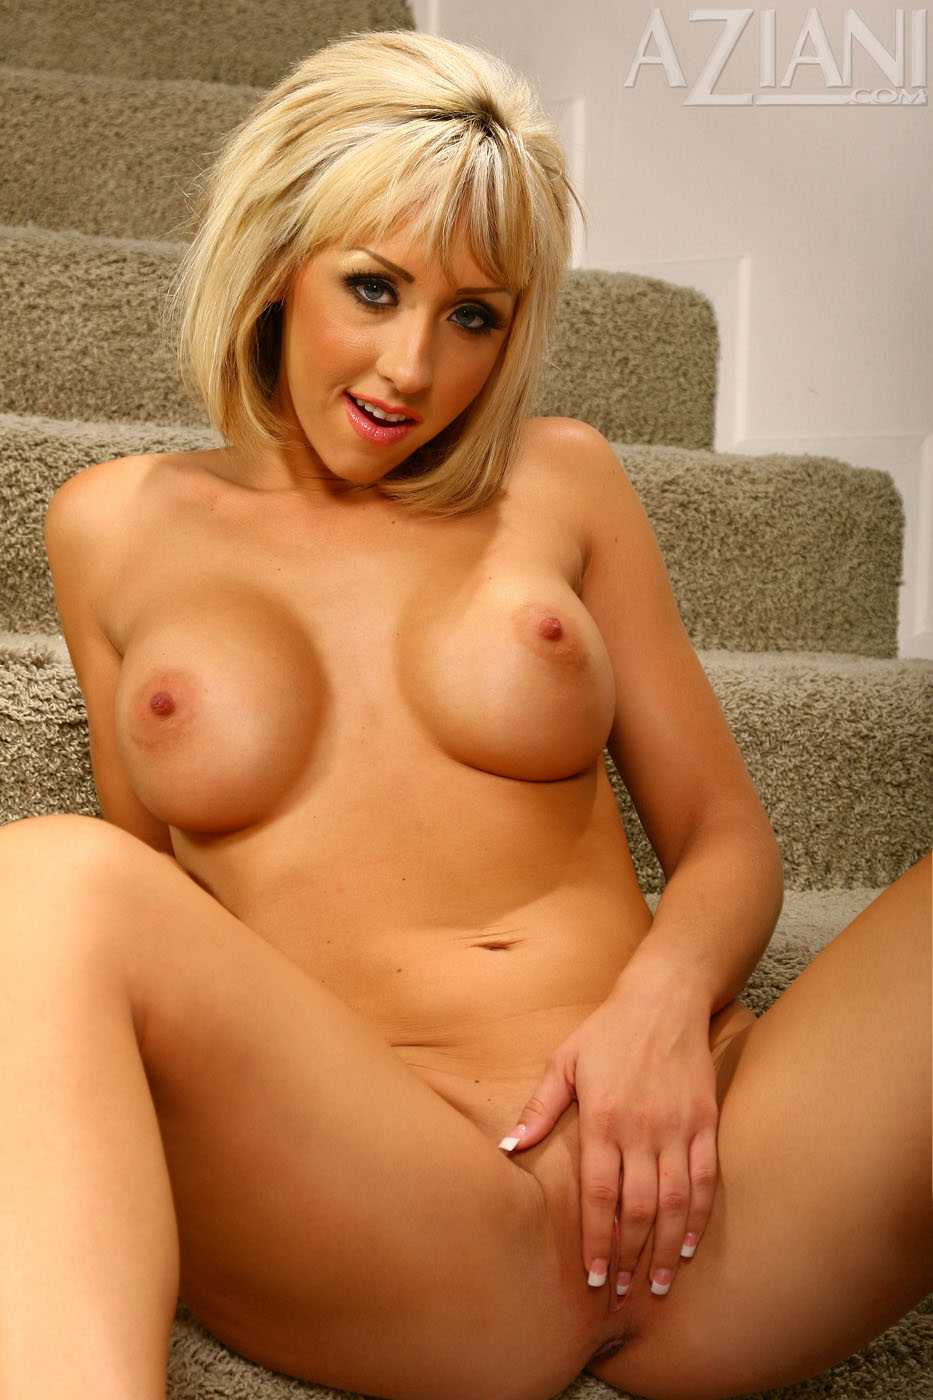 Speaking, would jessica lynn nude galleries perhaps shall